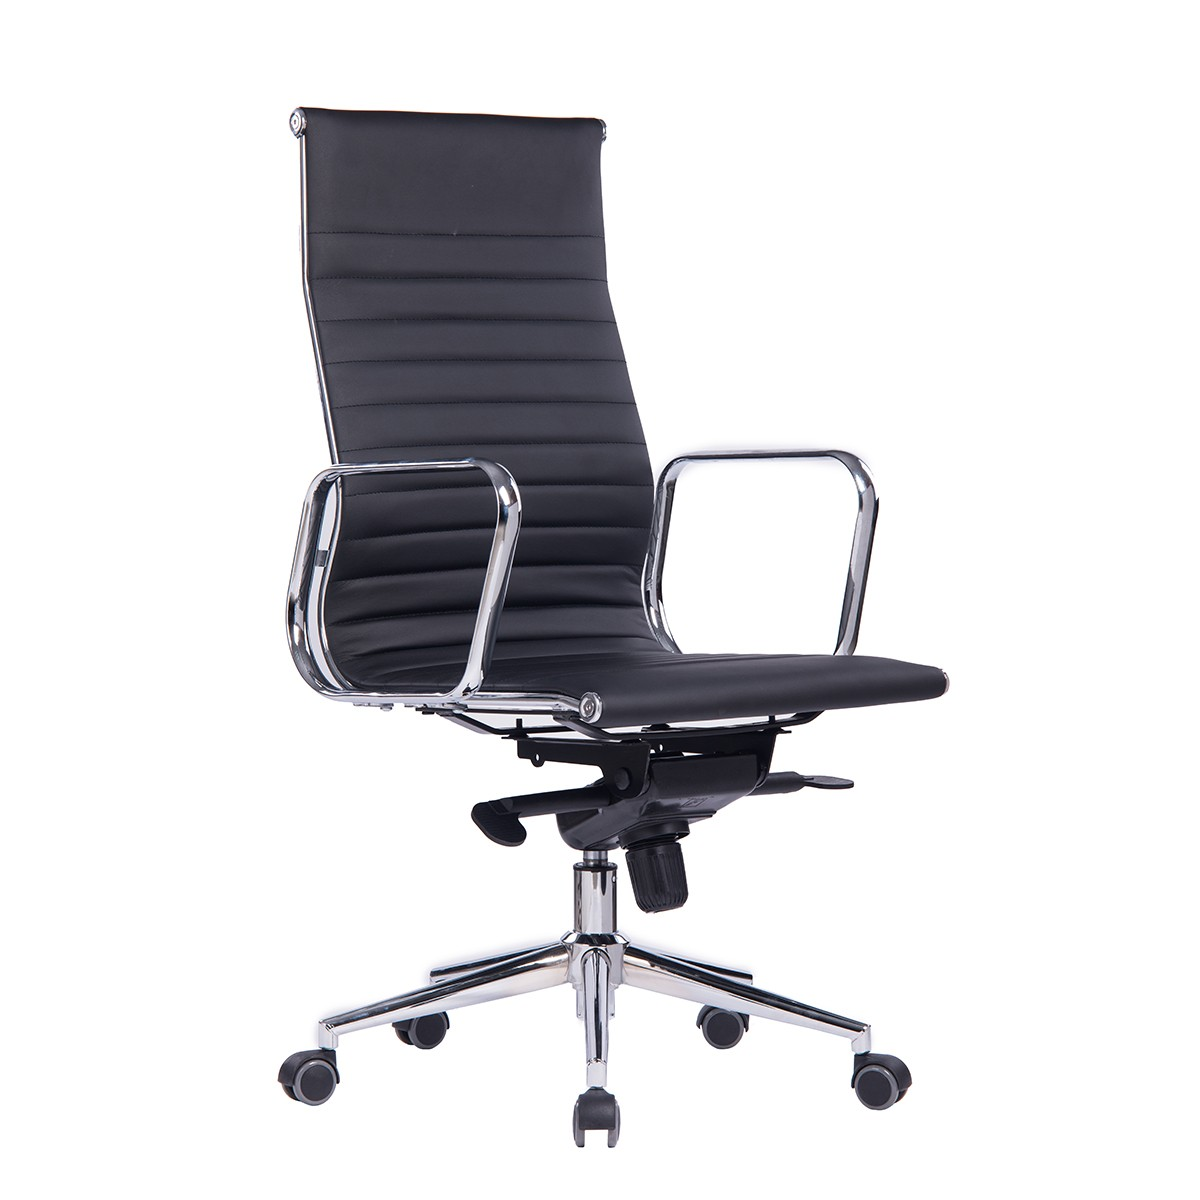 Office Armchair ARKANSAS, High, Similpiel Black